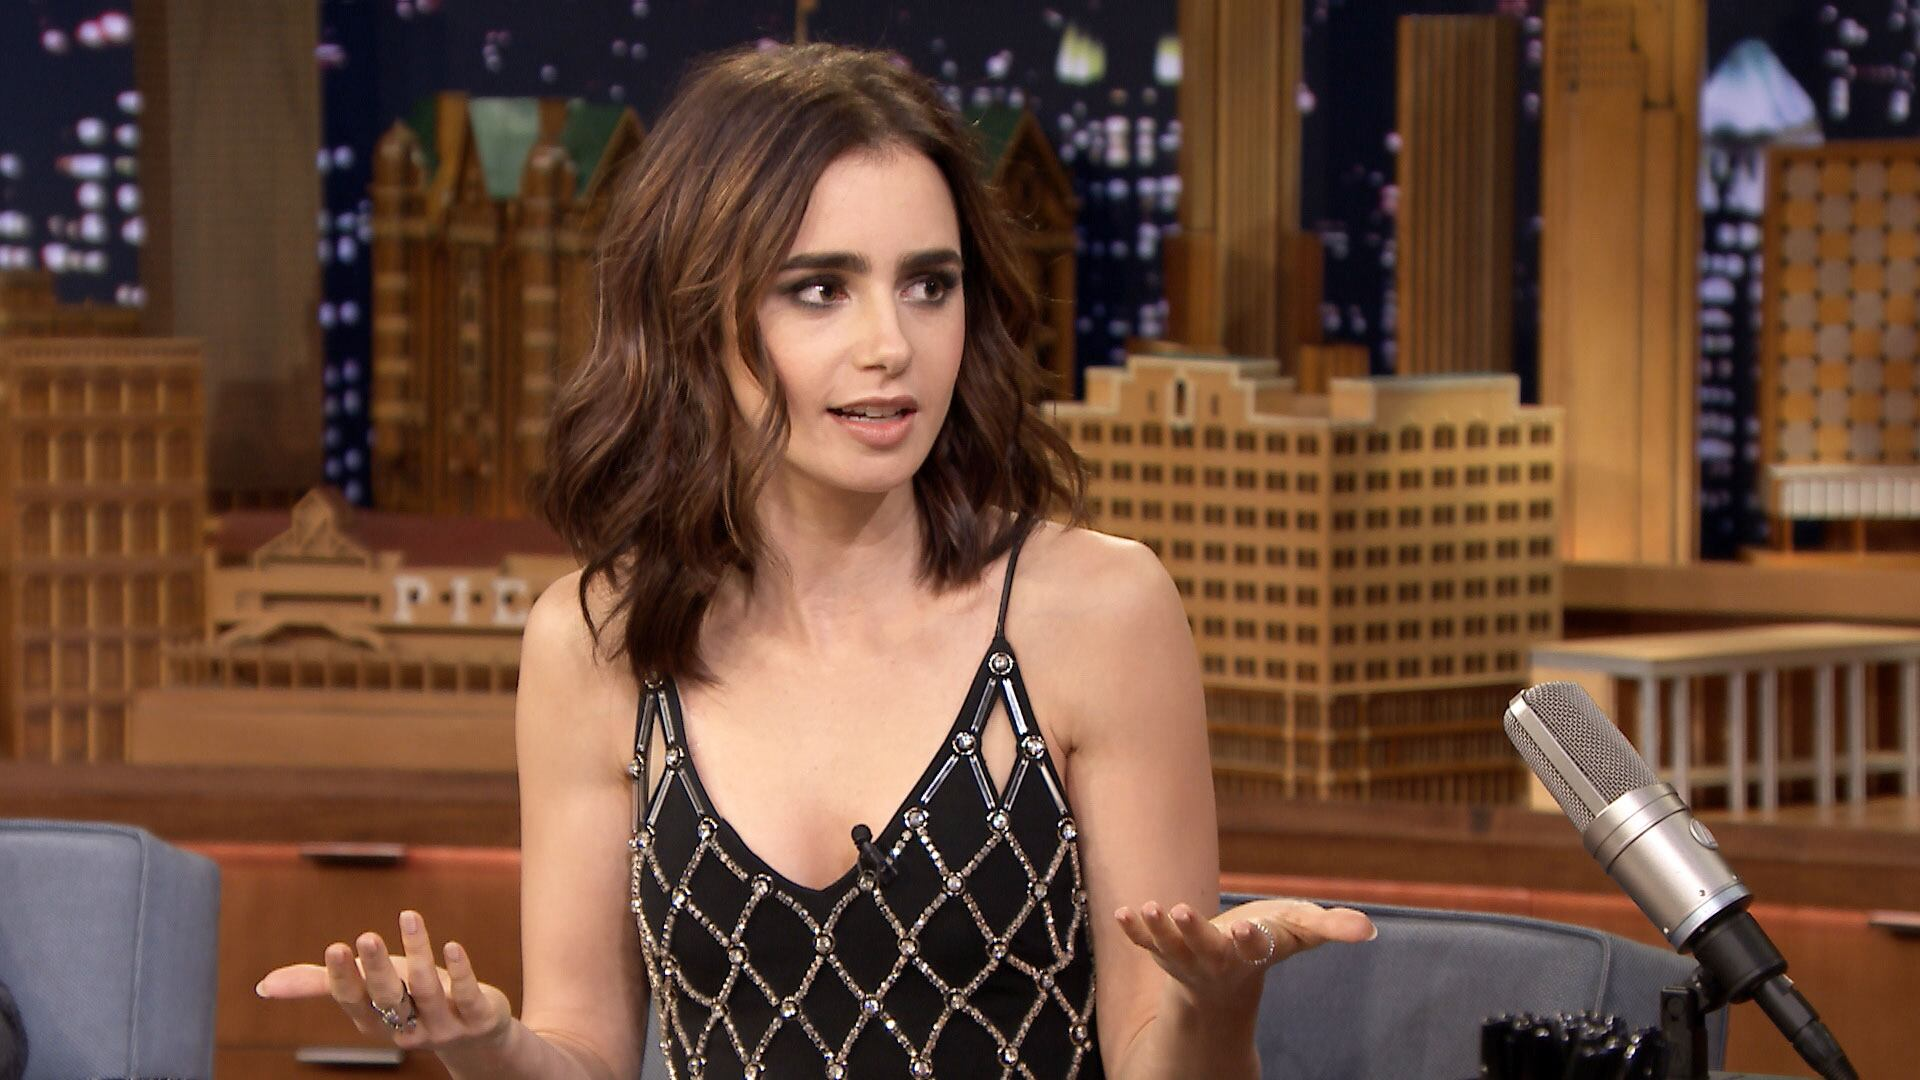 Lily Collins' First Phone Call with Warren Beatty Started with a Prank